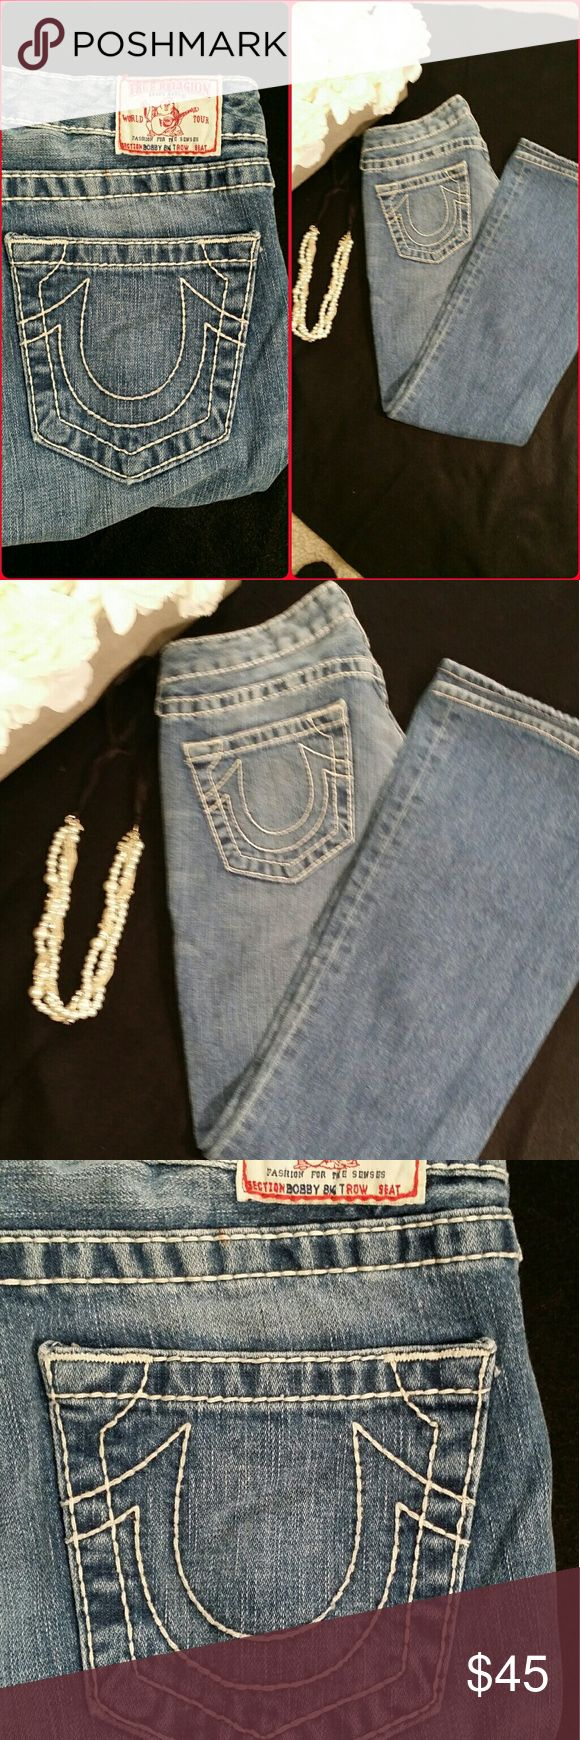 👖DAILY FLASH SALE👖True Religion Jean light blue 👖DAILY FLASH SALE👖True Religion light blue denim  boot cut jeans with white horseshoe stitching. These are a size 28. Preowned. No rips, no tears, holes or stains. No hem wear at bottom. True Religion Jeans Boot Cut